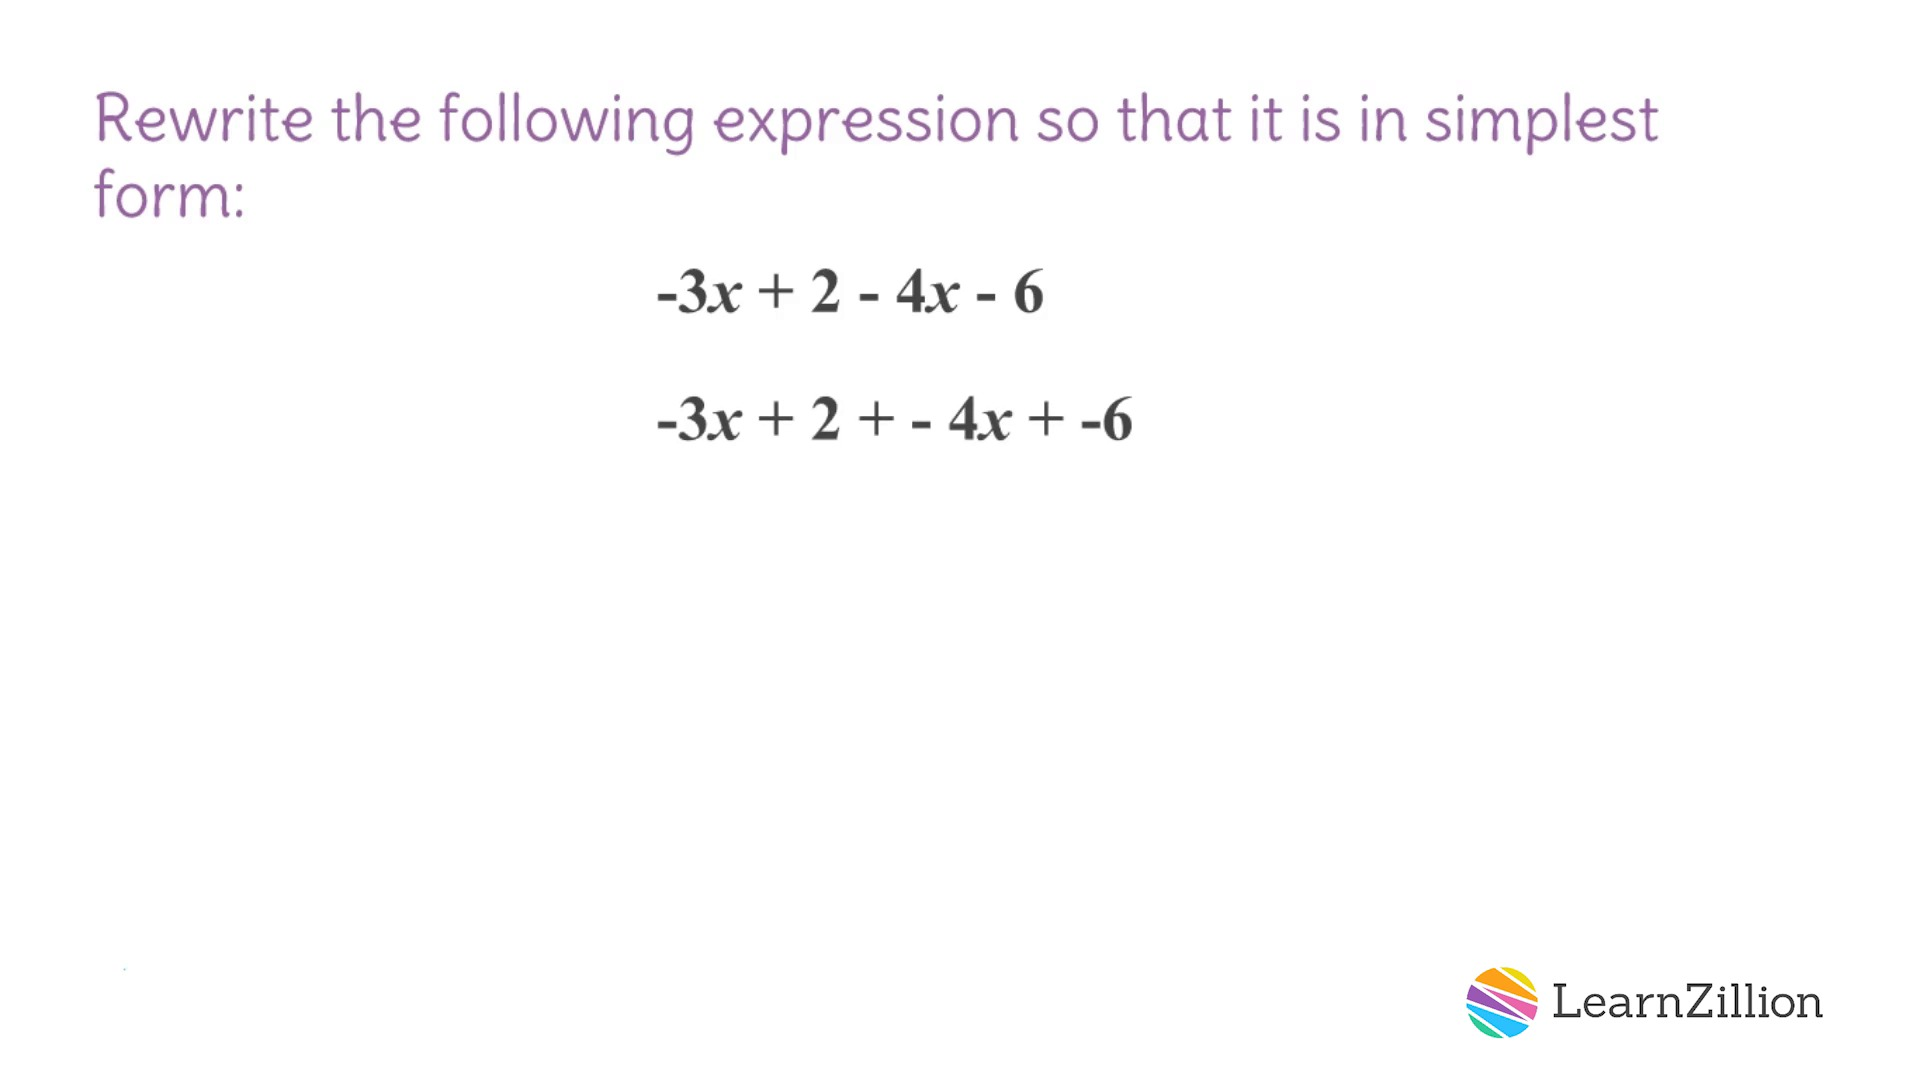 worksheet Zero And Negative Exponents Worksheet Queensammy – Simplifying Expressions with Exponents Worksheet